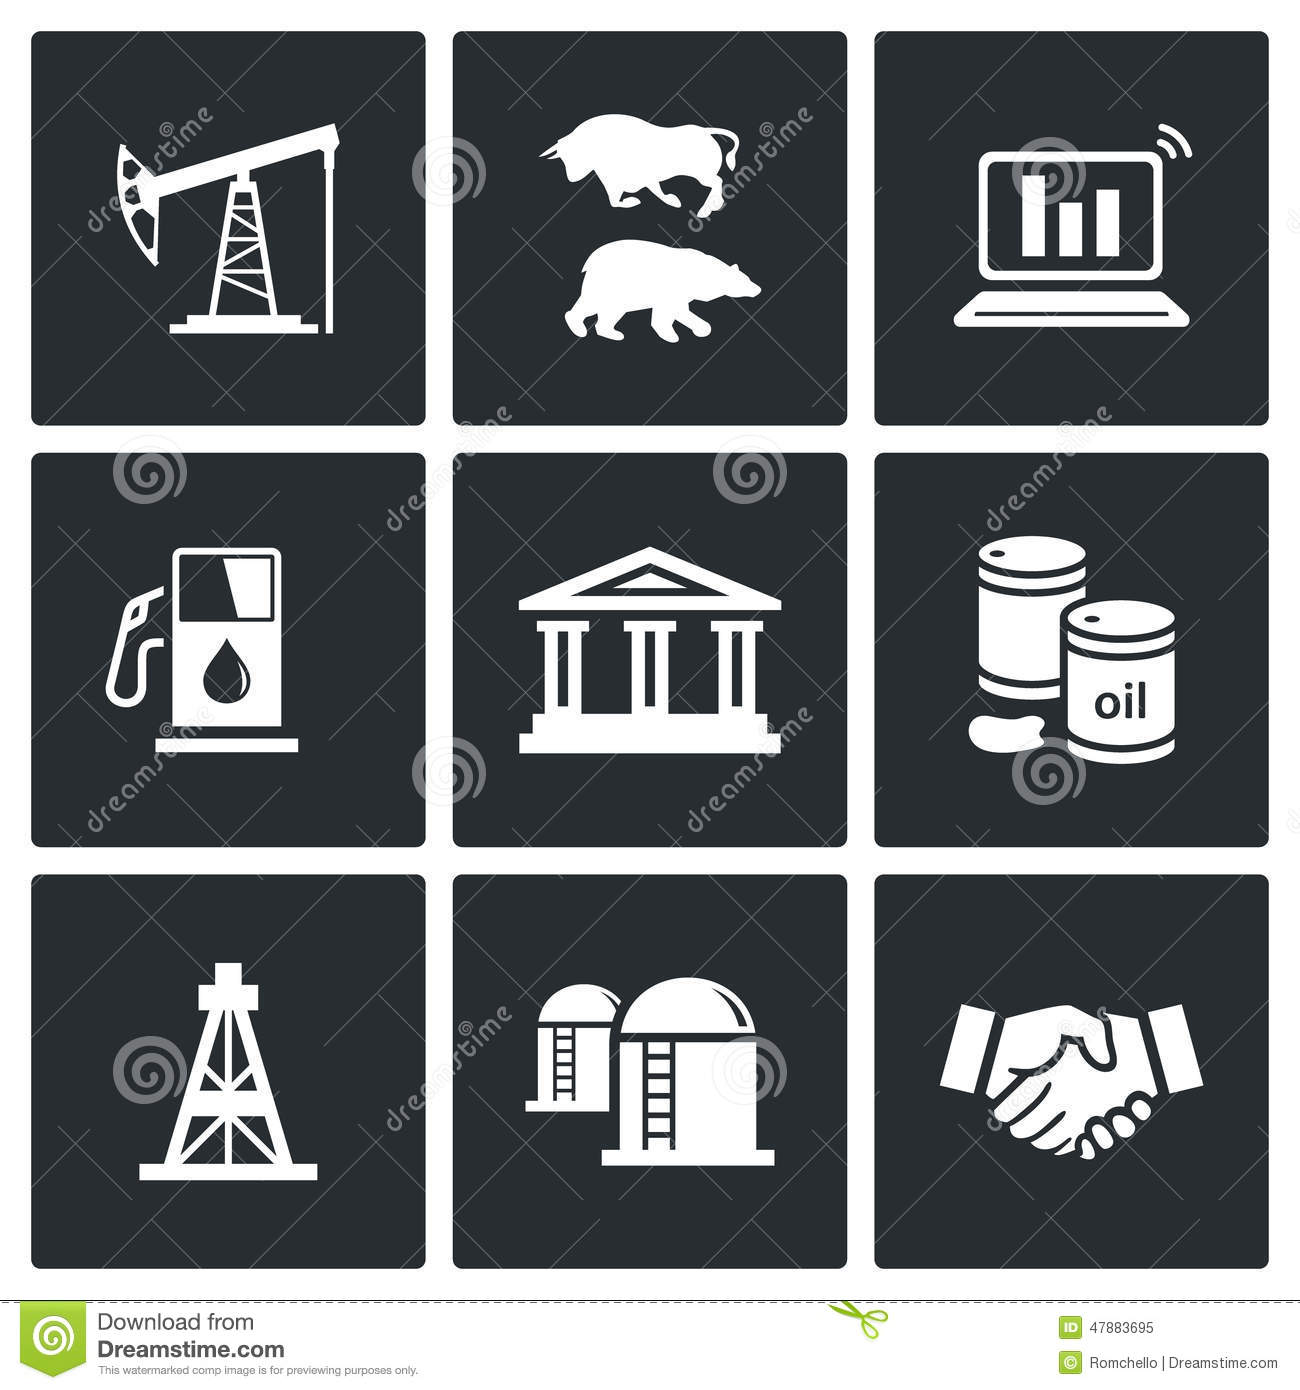 Oil and gas industry vector icons set stock illustration oil and gas industry vector icons set biocorpaavc